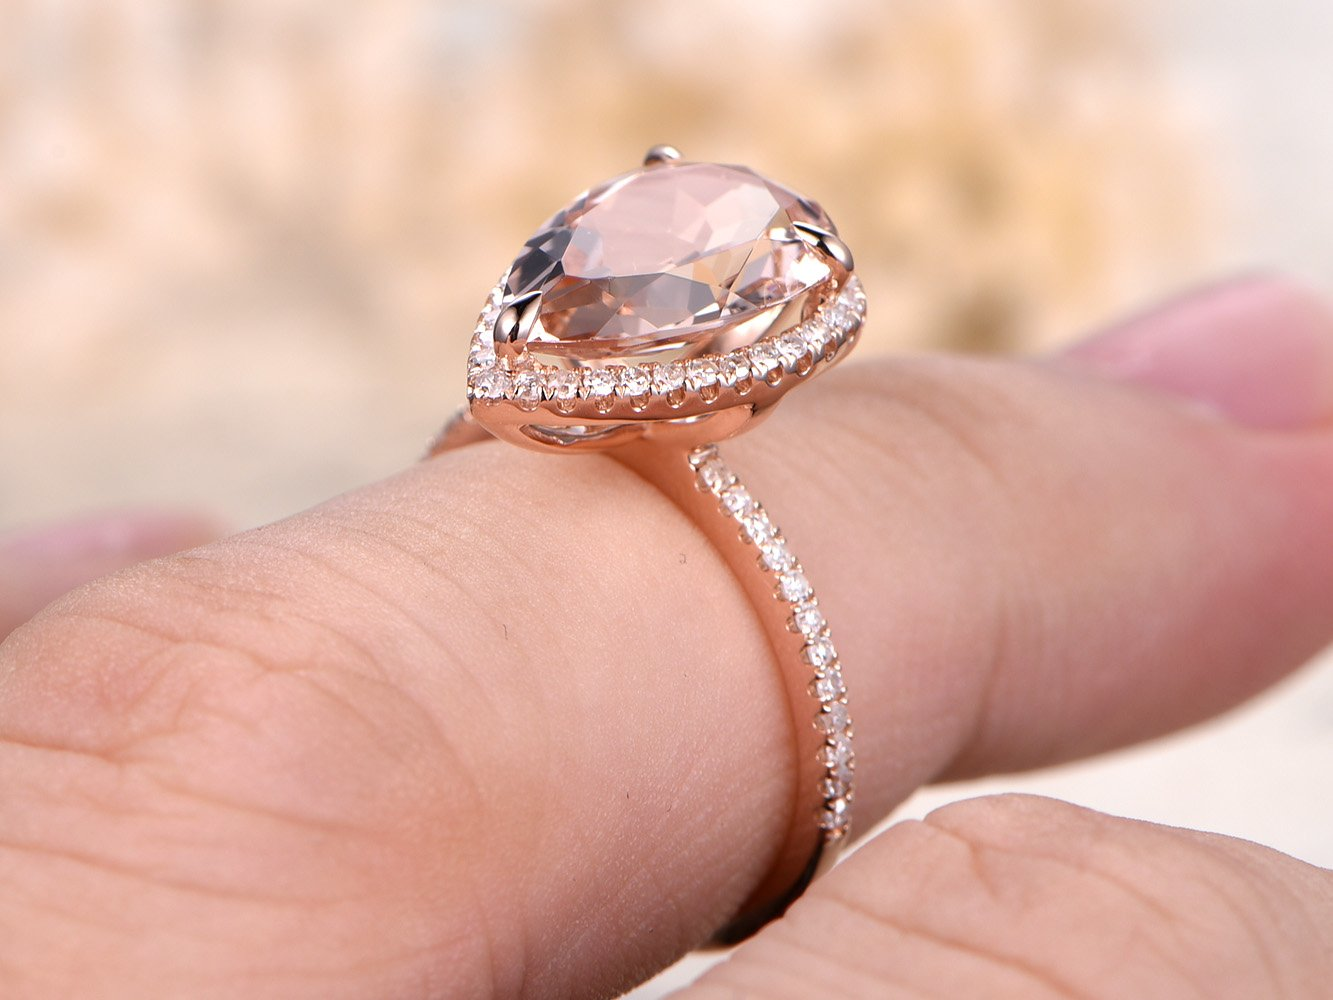 Amazon.com: Natural Pink Morganite Engagement Ring,8x12mm Pear ...